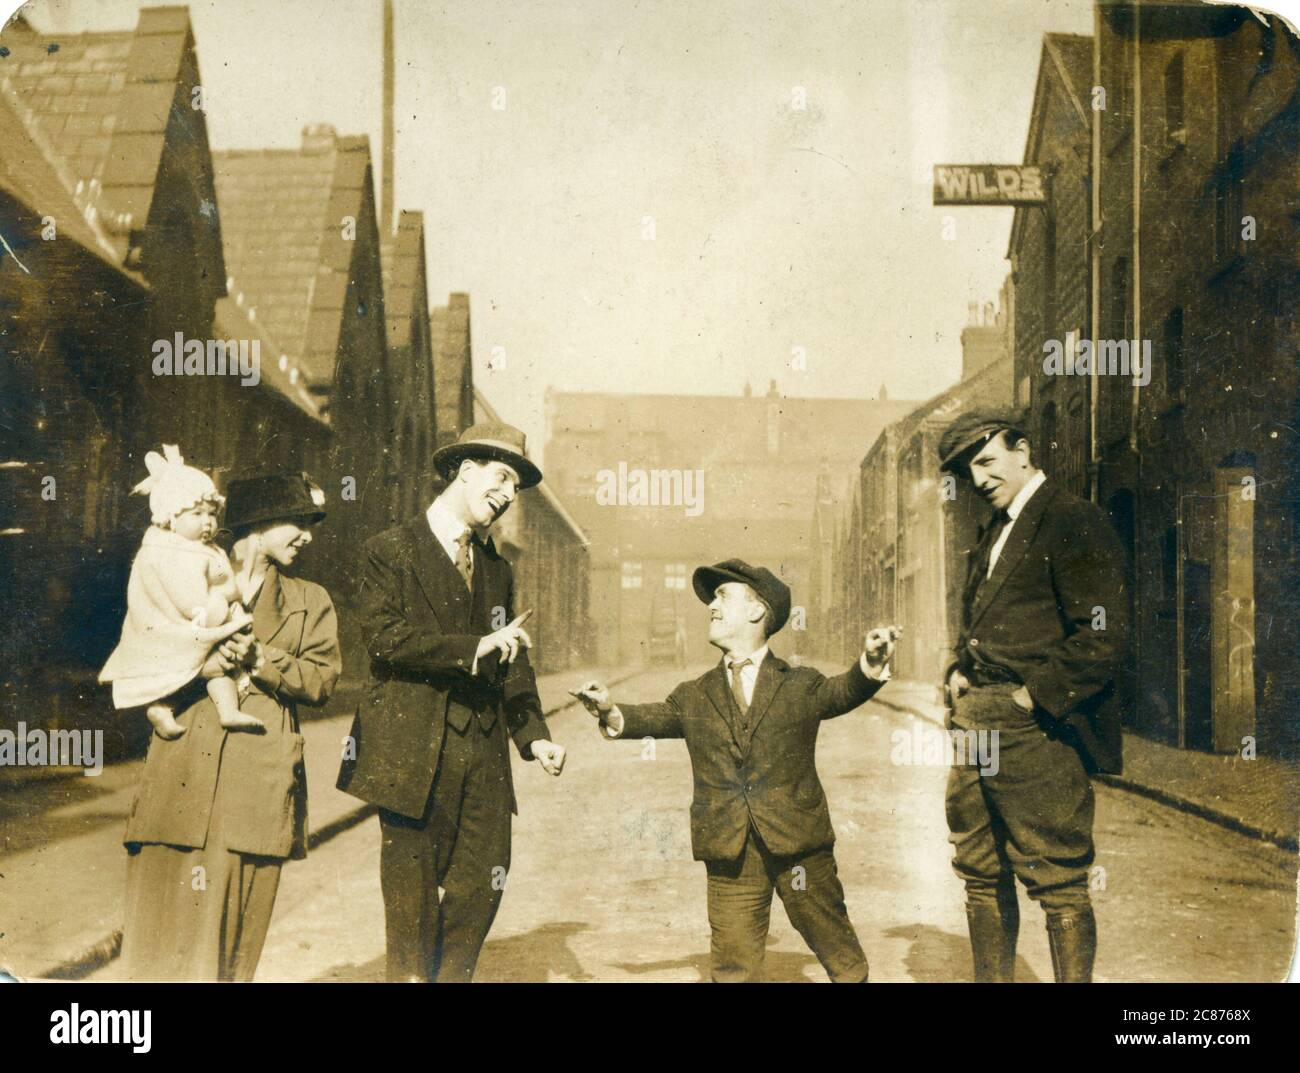 Group of people, possibly family members, including a man of restricted growth (dwarfism), 1920s.     Date: 1920s Stock Photo